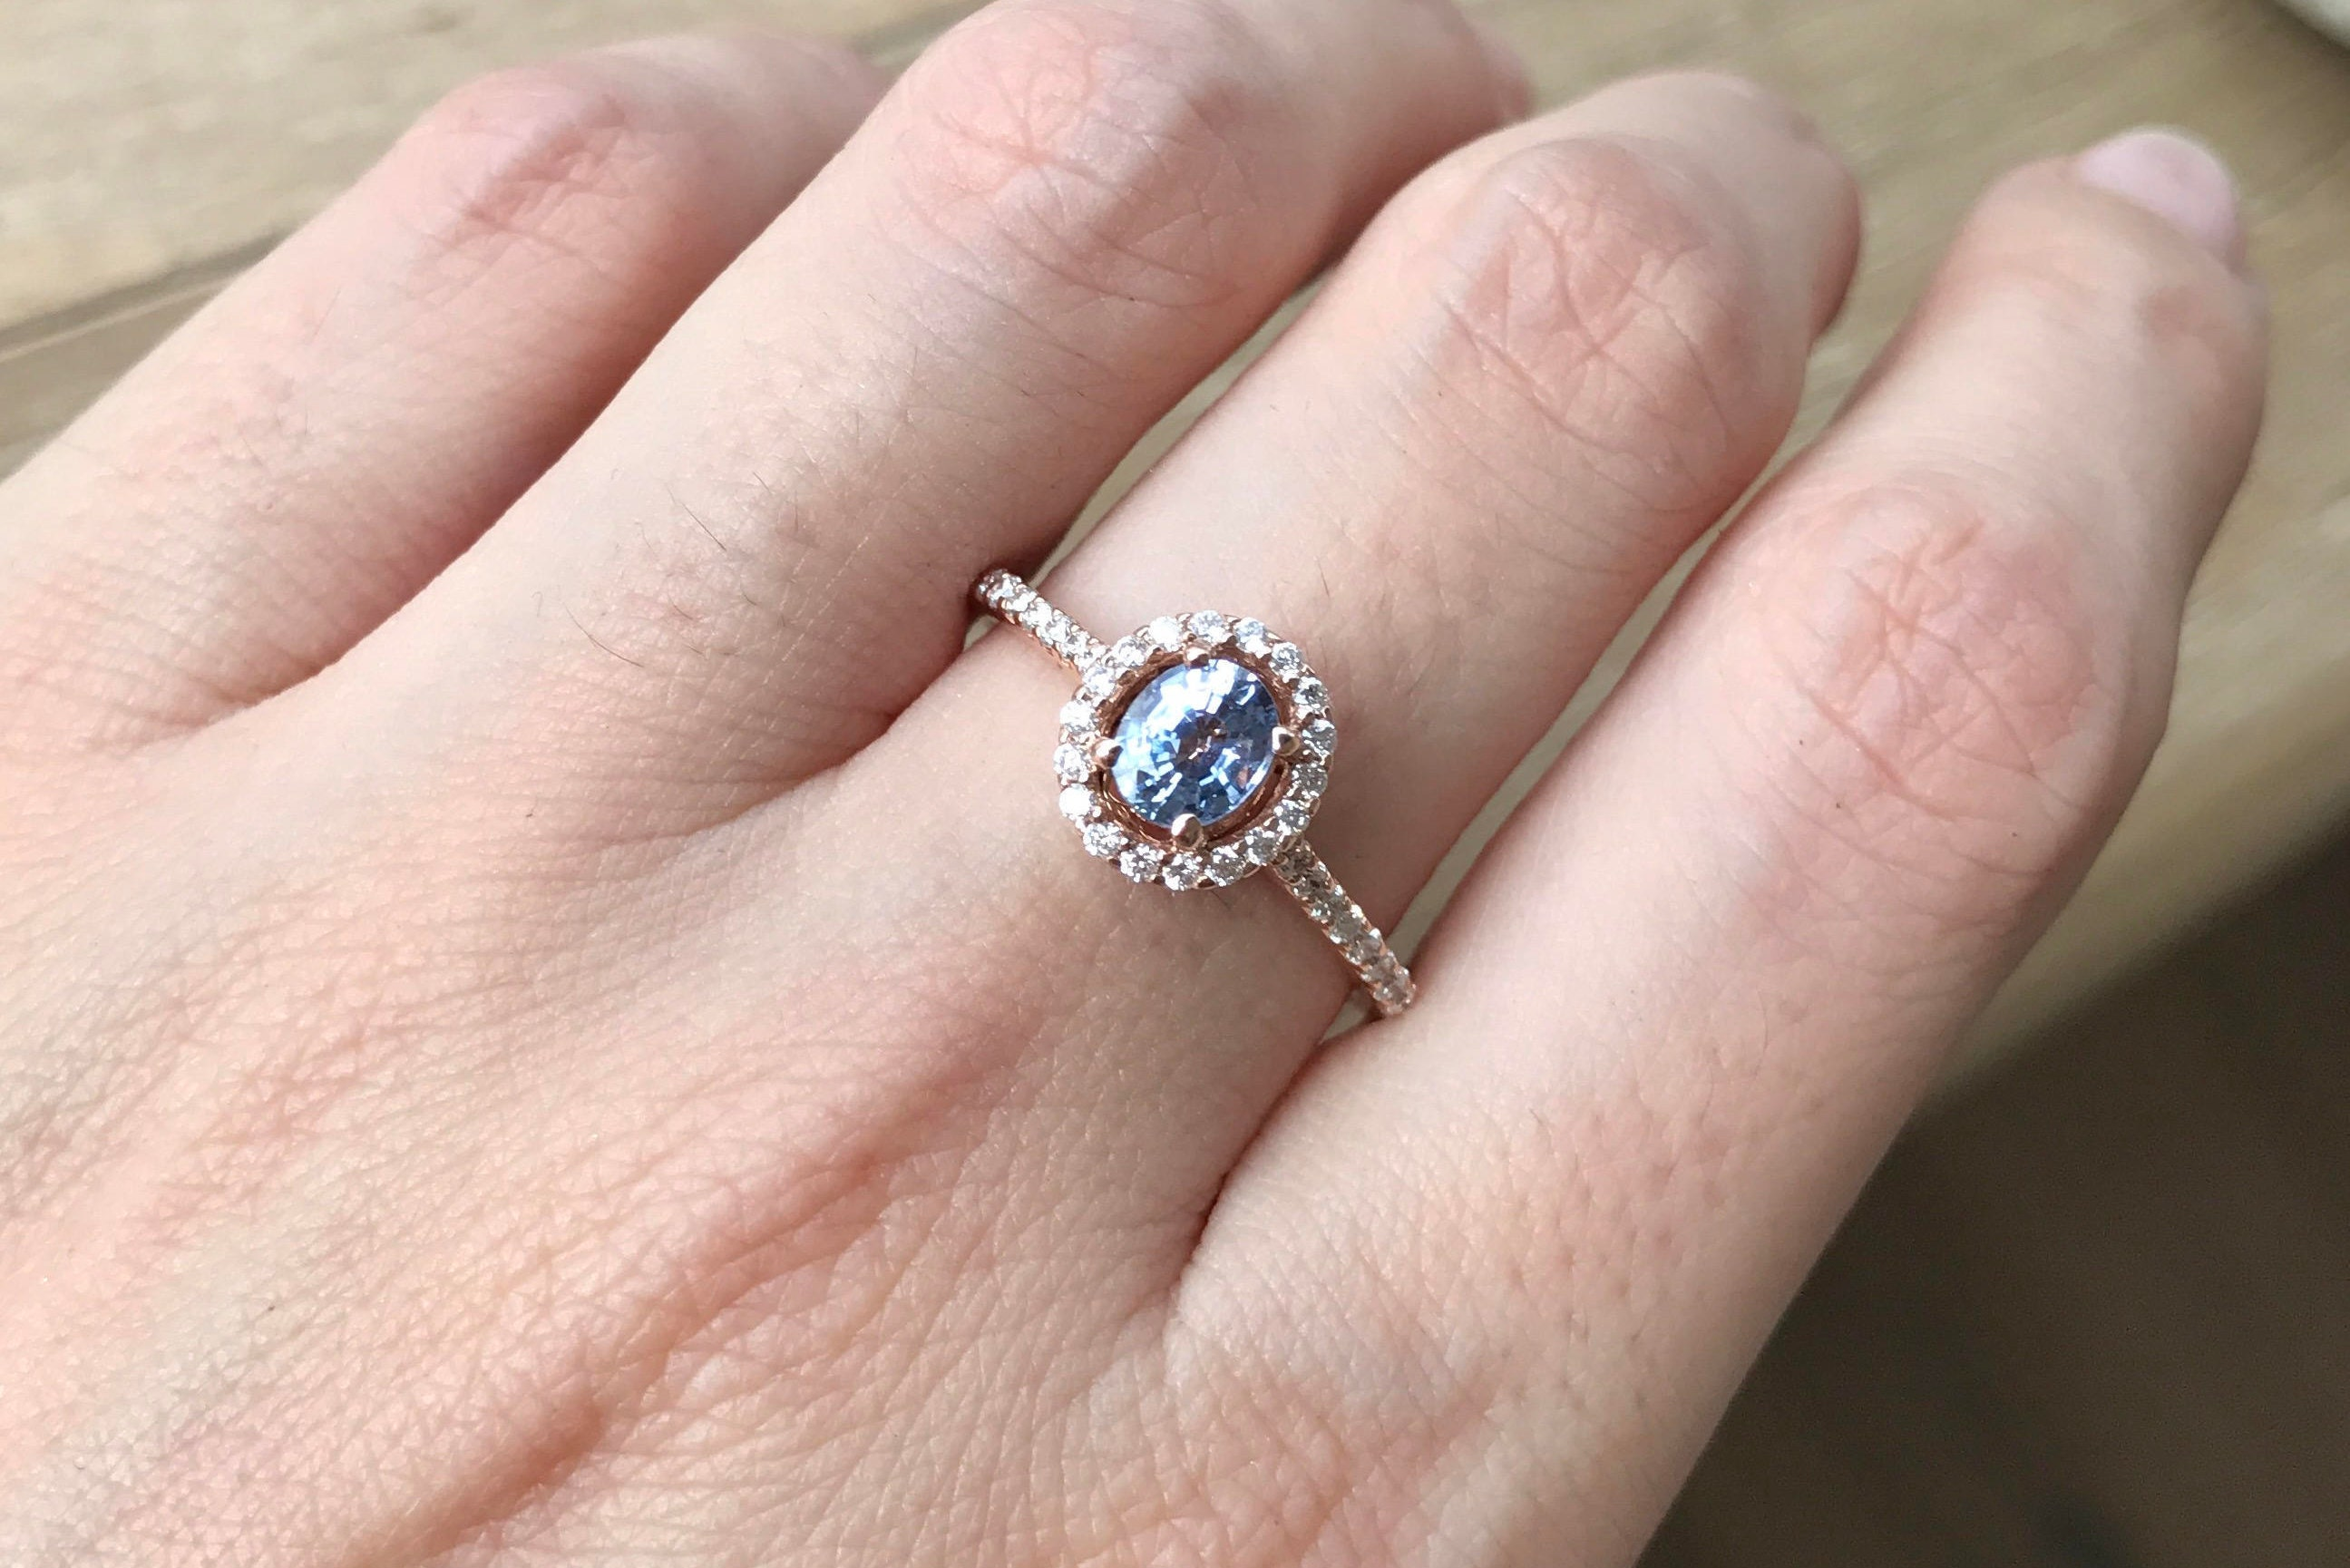 mm gemstones with best article side inspired on aquamarine the diamond oval stone ring for international your center platinum colored three setting engagement detail rings two in vintage a scrollwork sapphire